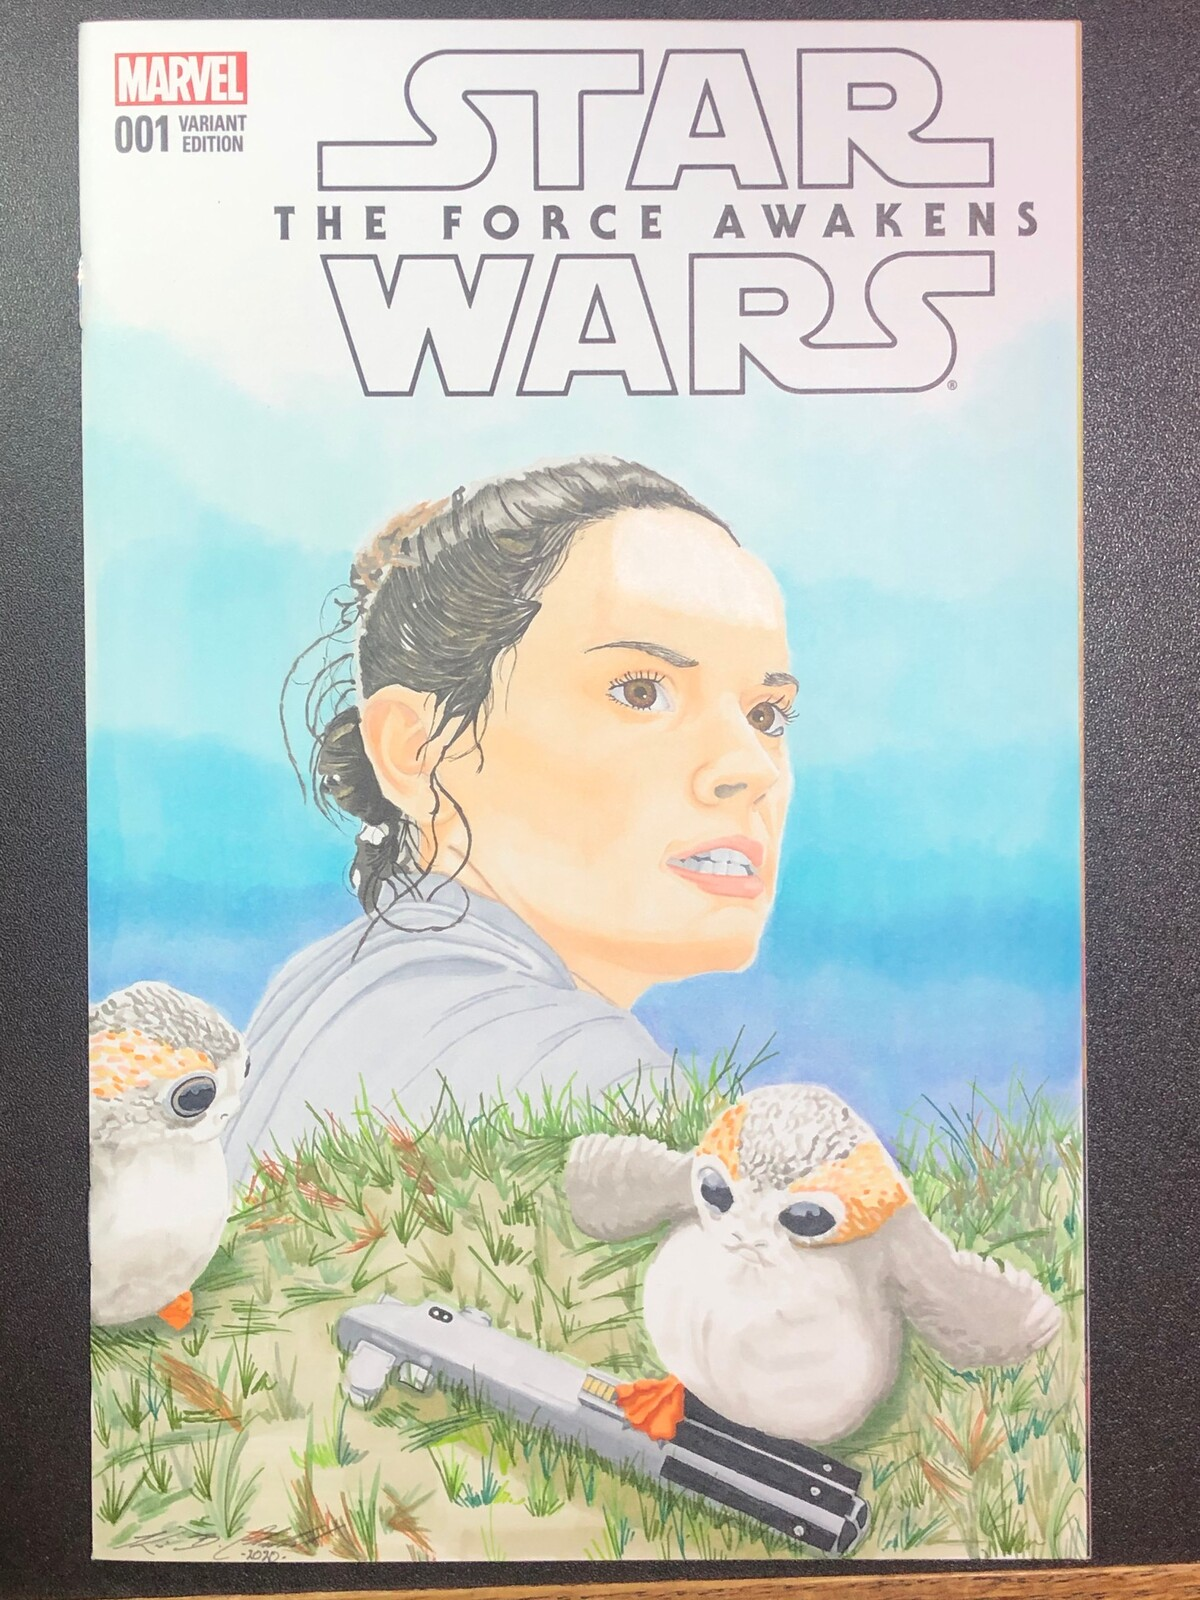 Comic cover art commission - Rey and Porgs